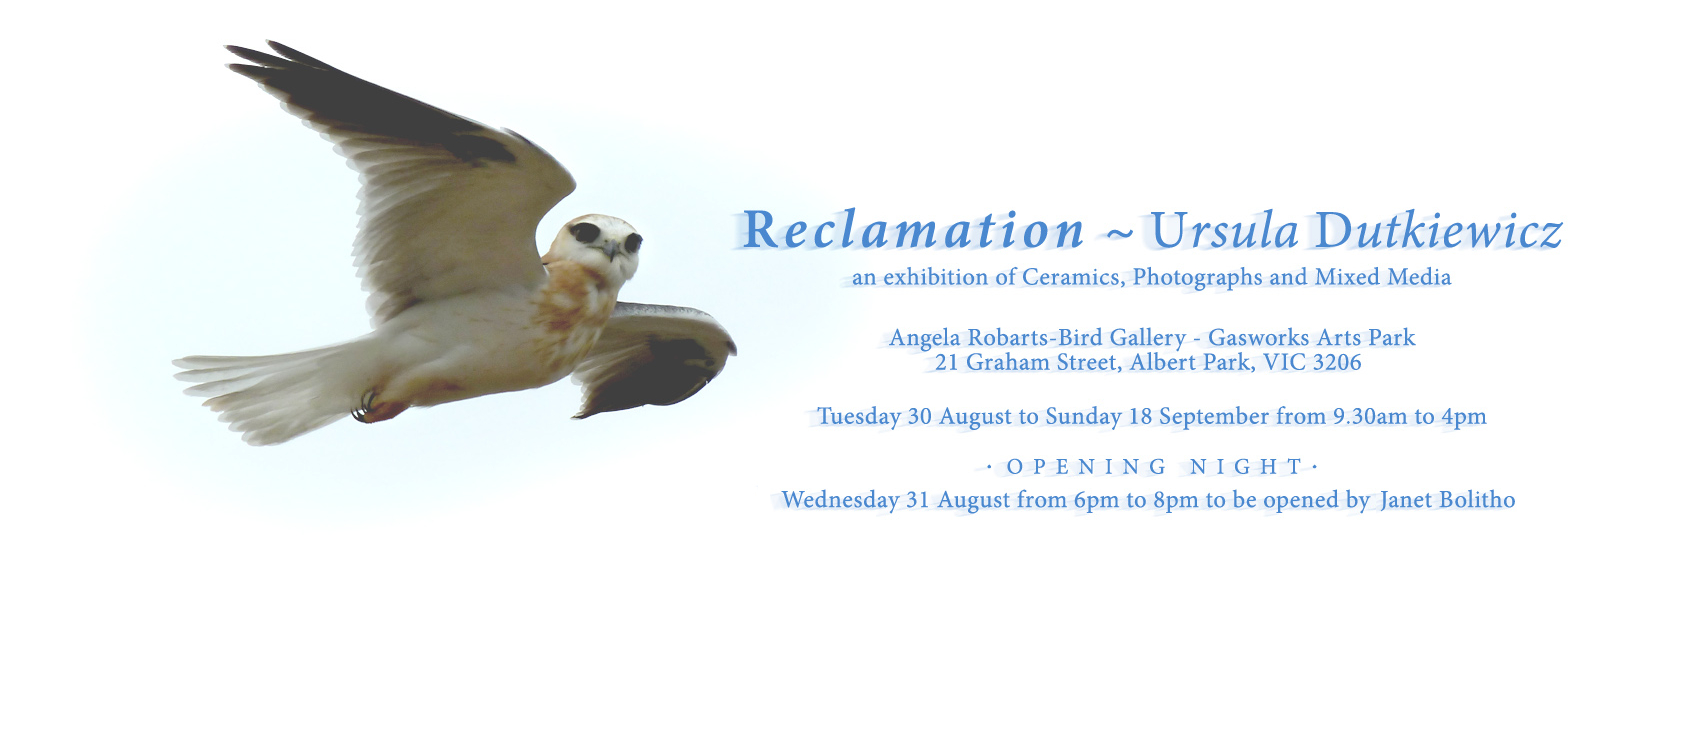 Ursula-Reclamation-1C-Header-AD-02